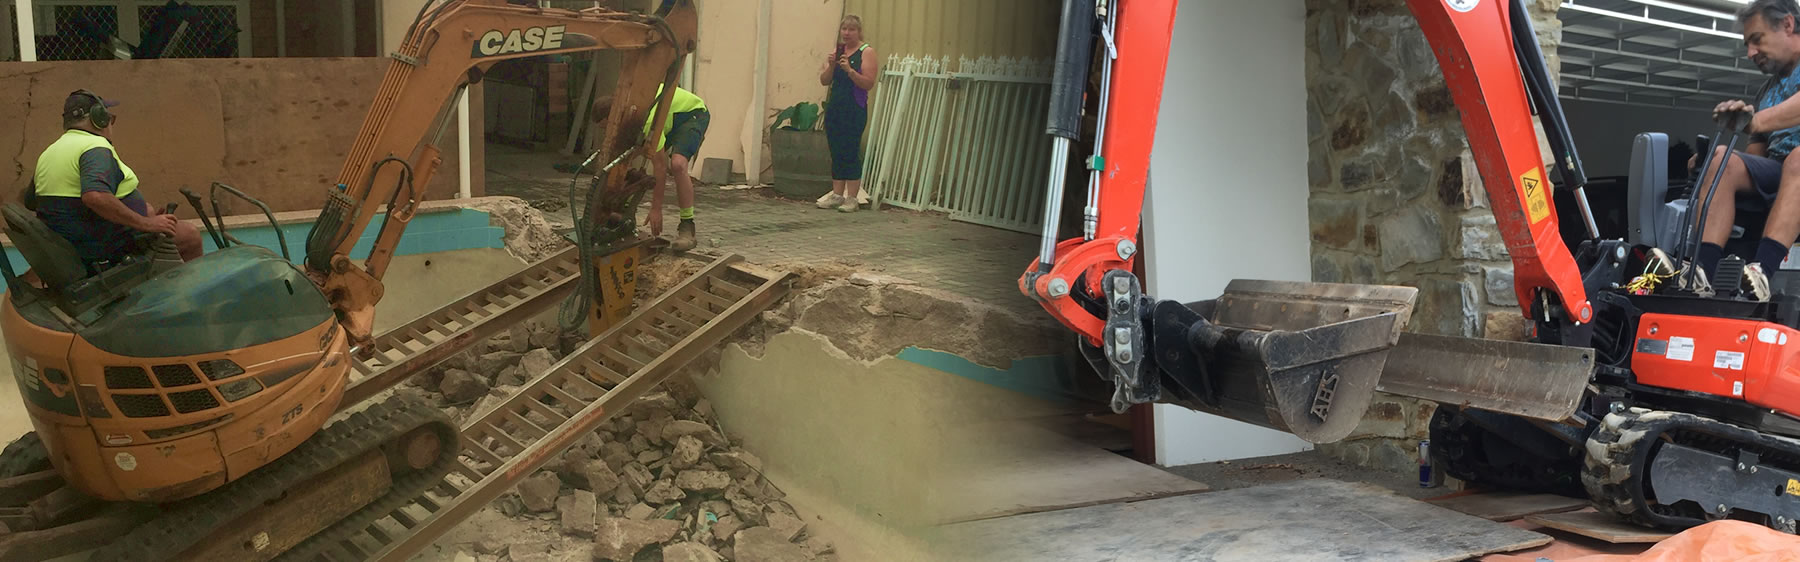 Earthmoving adelaide excavation adelaide pool demolition for Pool show adelaide 2018